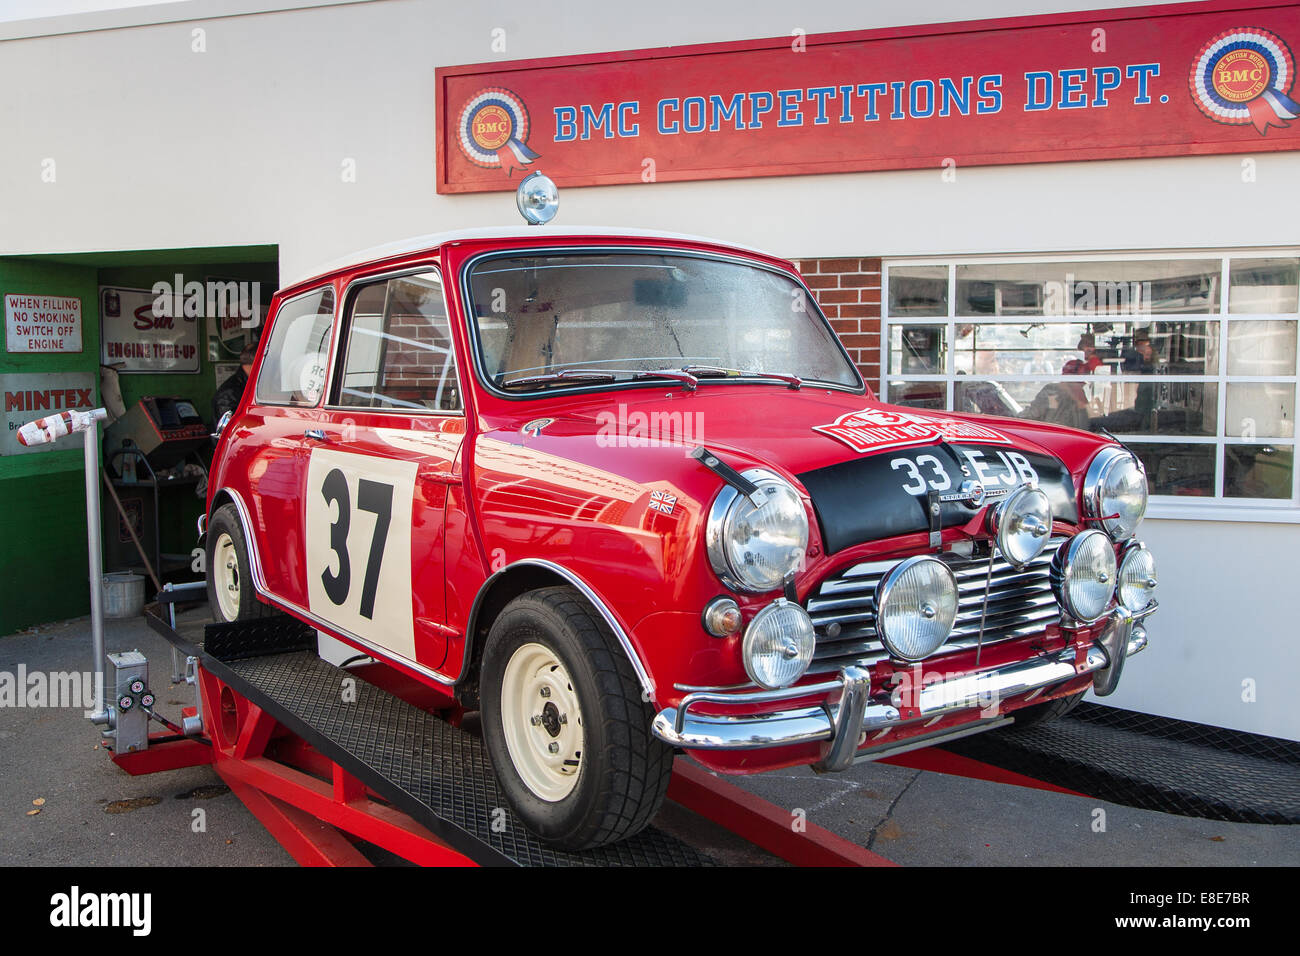 Classic vintage red BMC Mini Cooper racing car at the Goodwood Revival 2014, West Sussex, UK - Stock Image